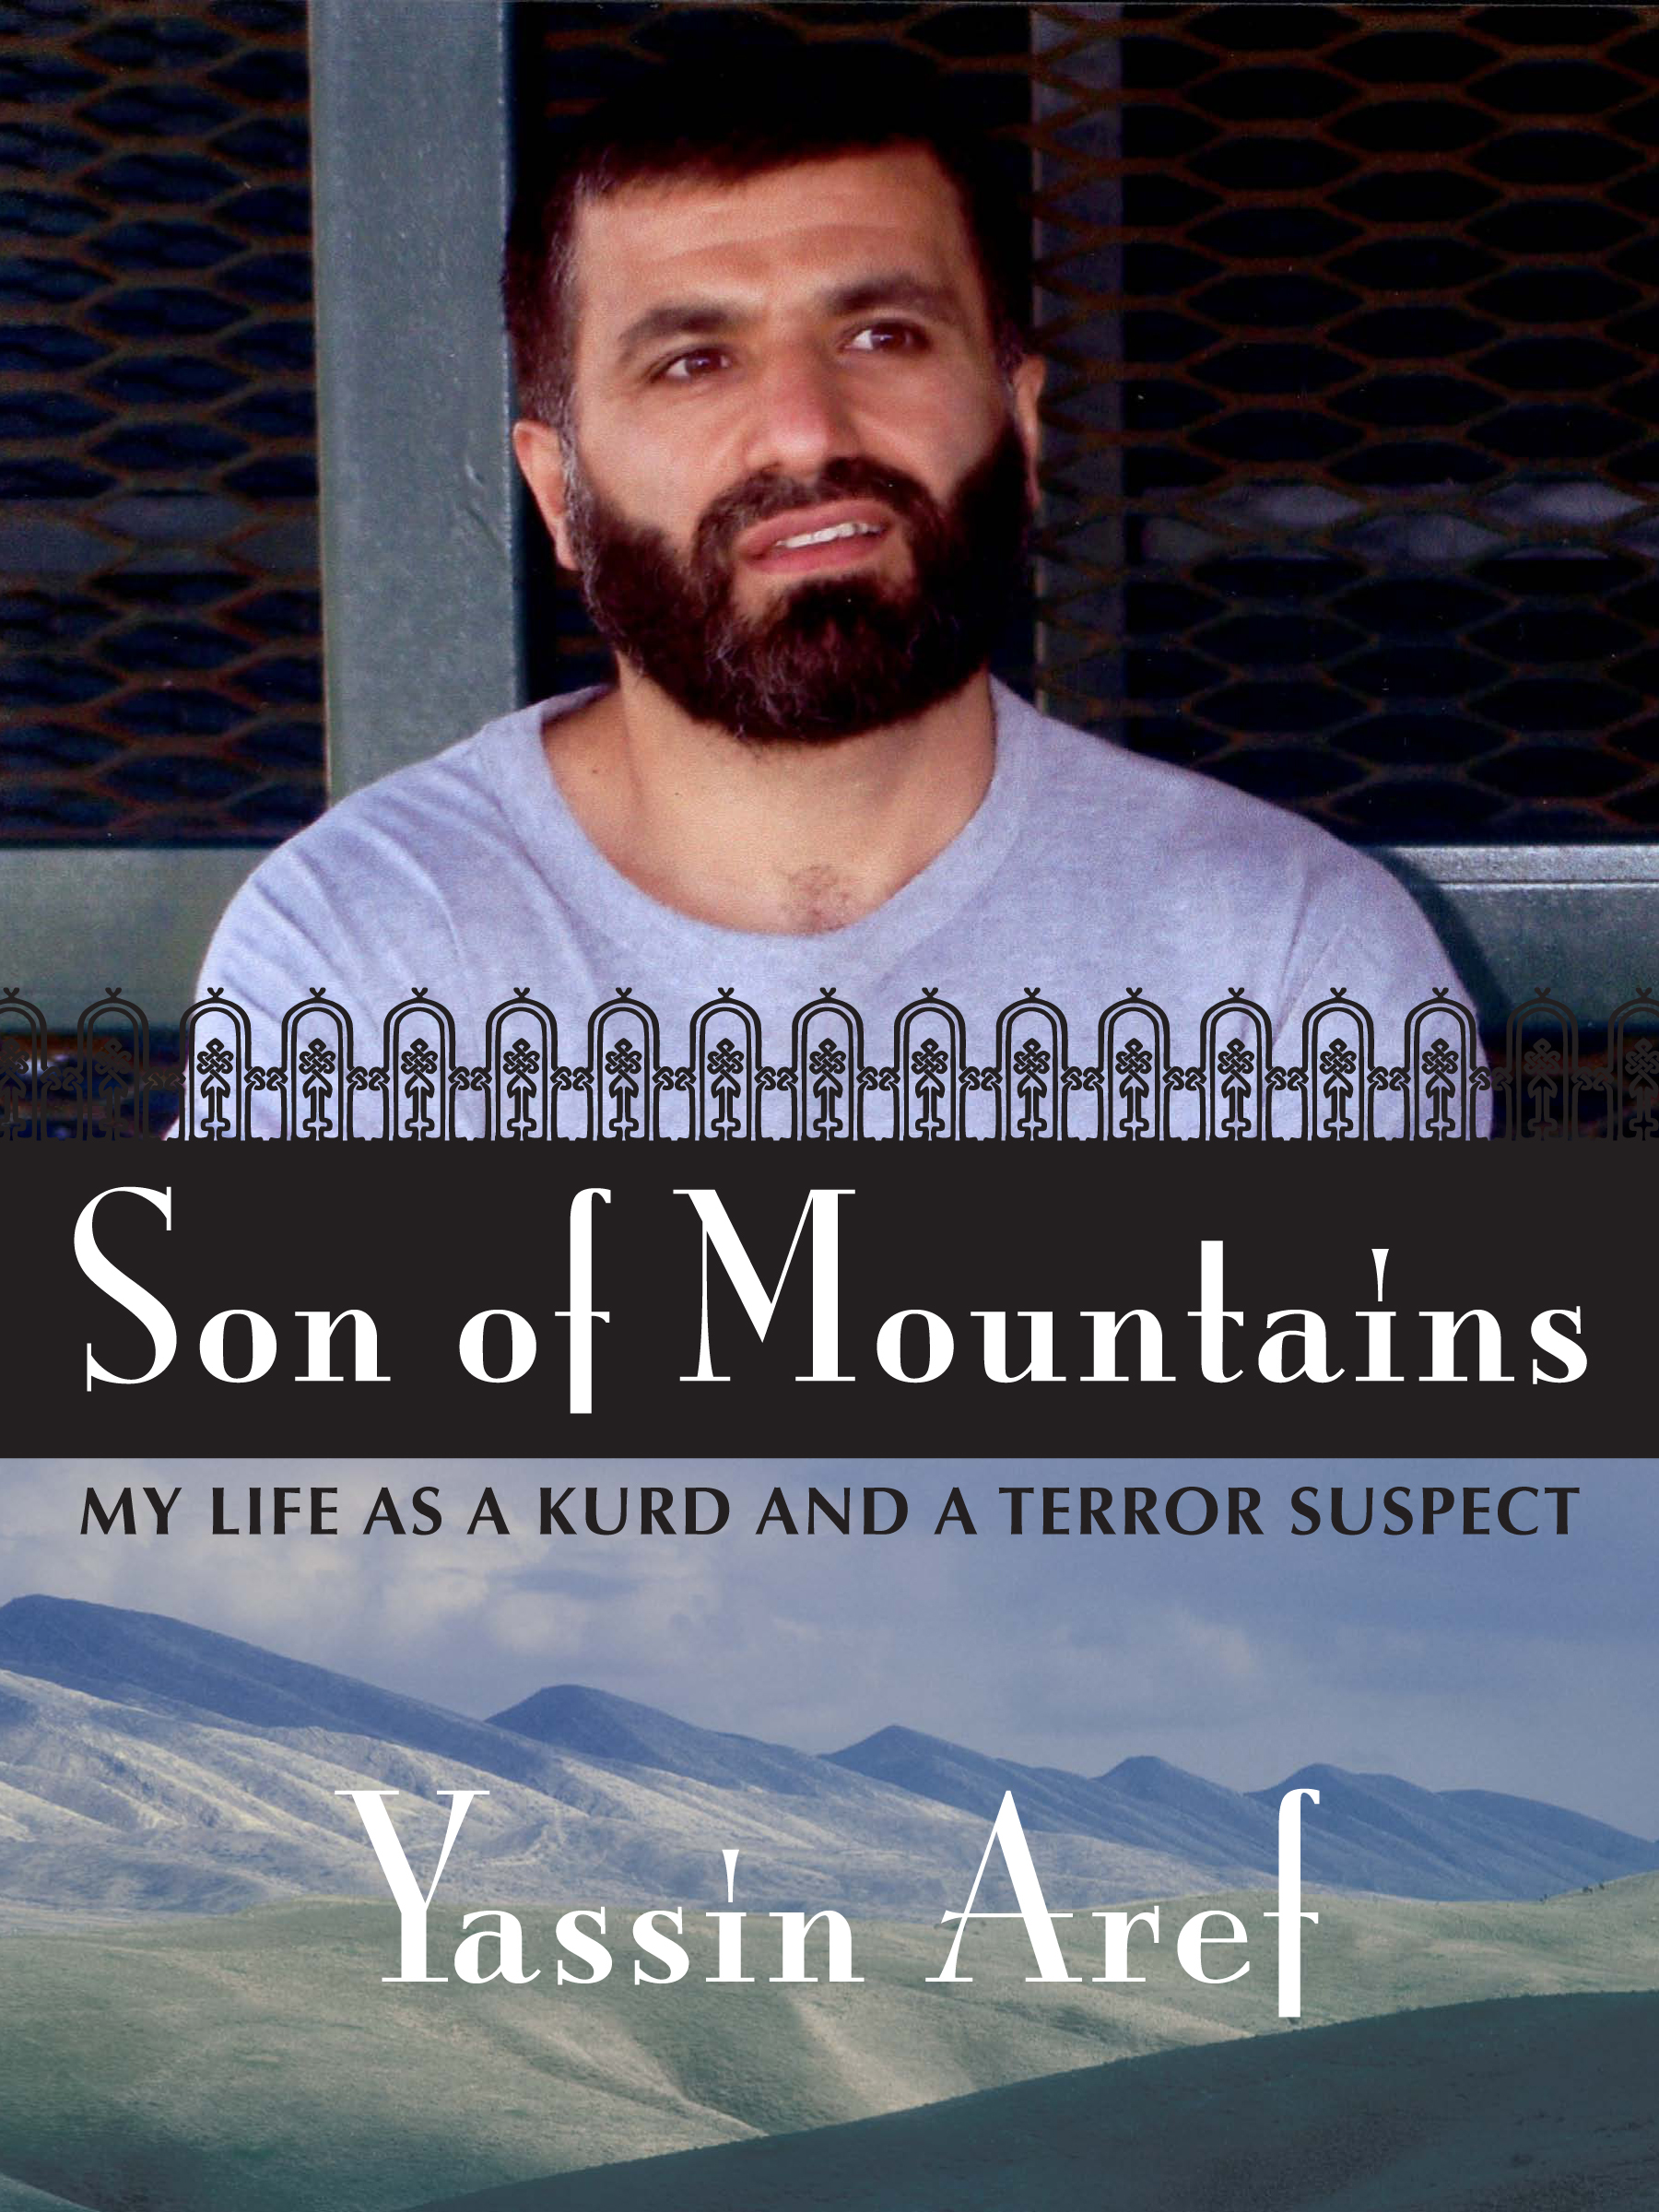 Son of Mountains: My Life as a Kurd and a Terror Suspect YASSIN AREF